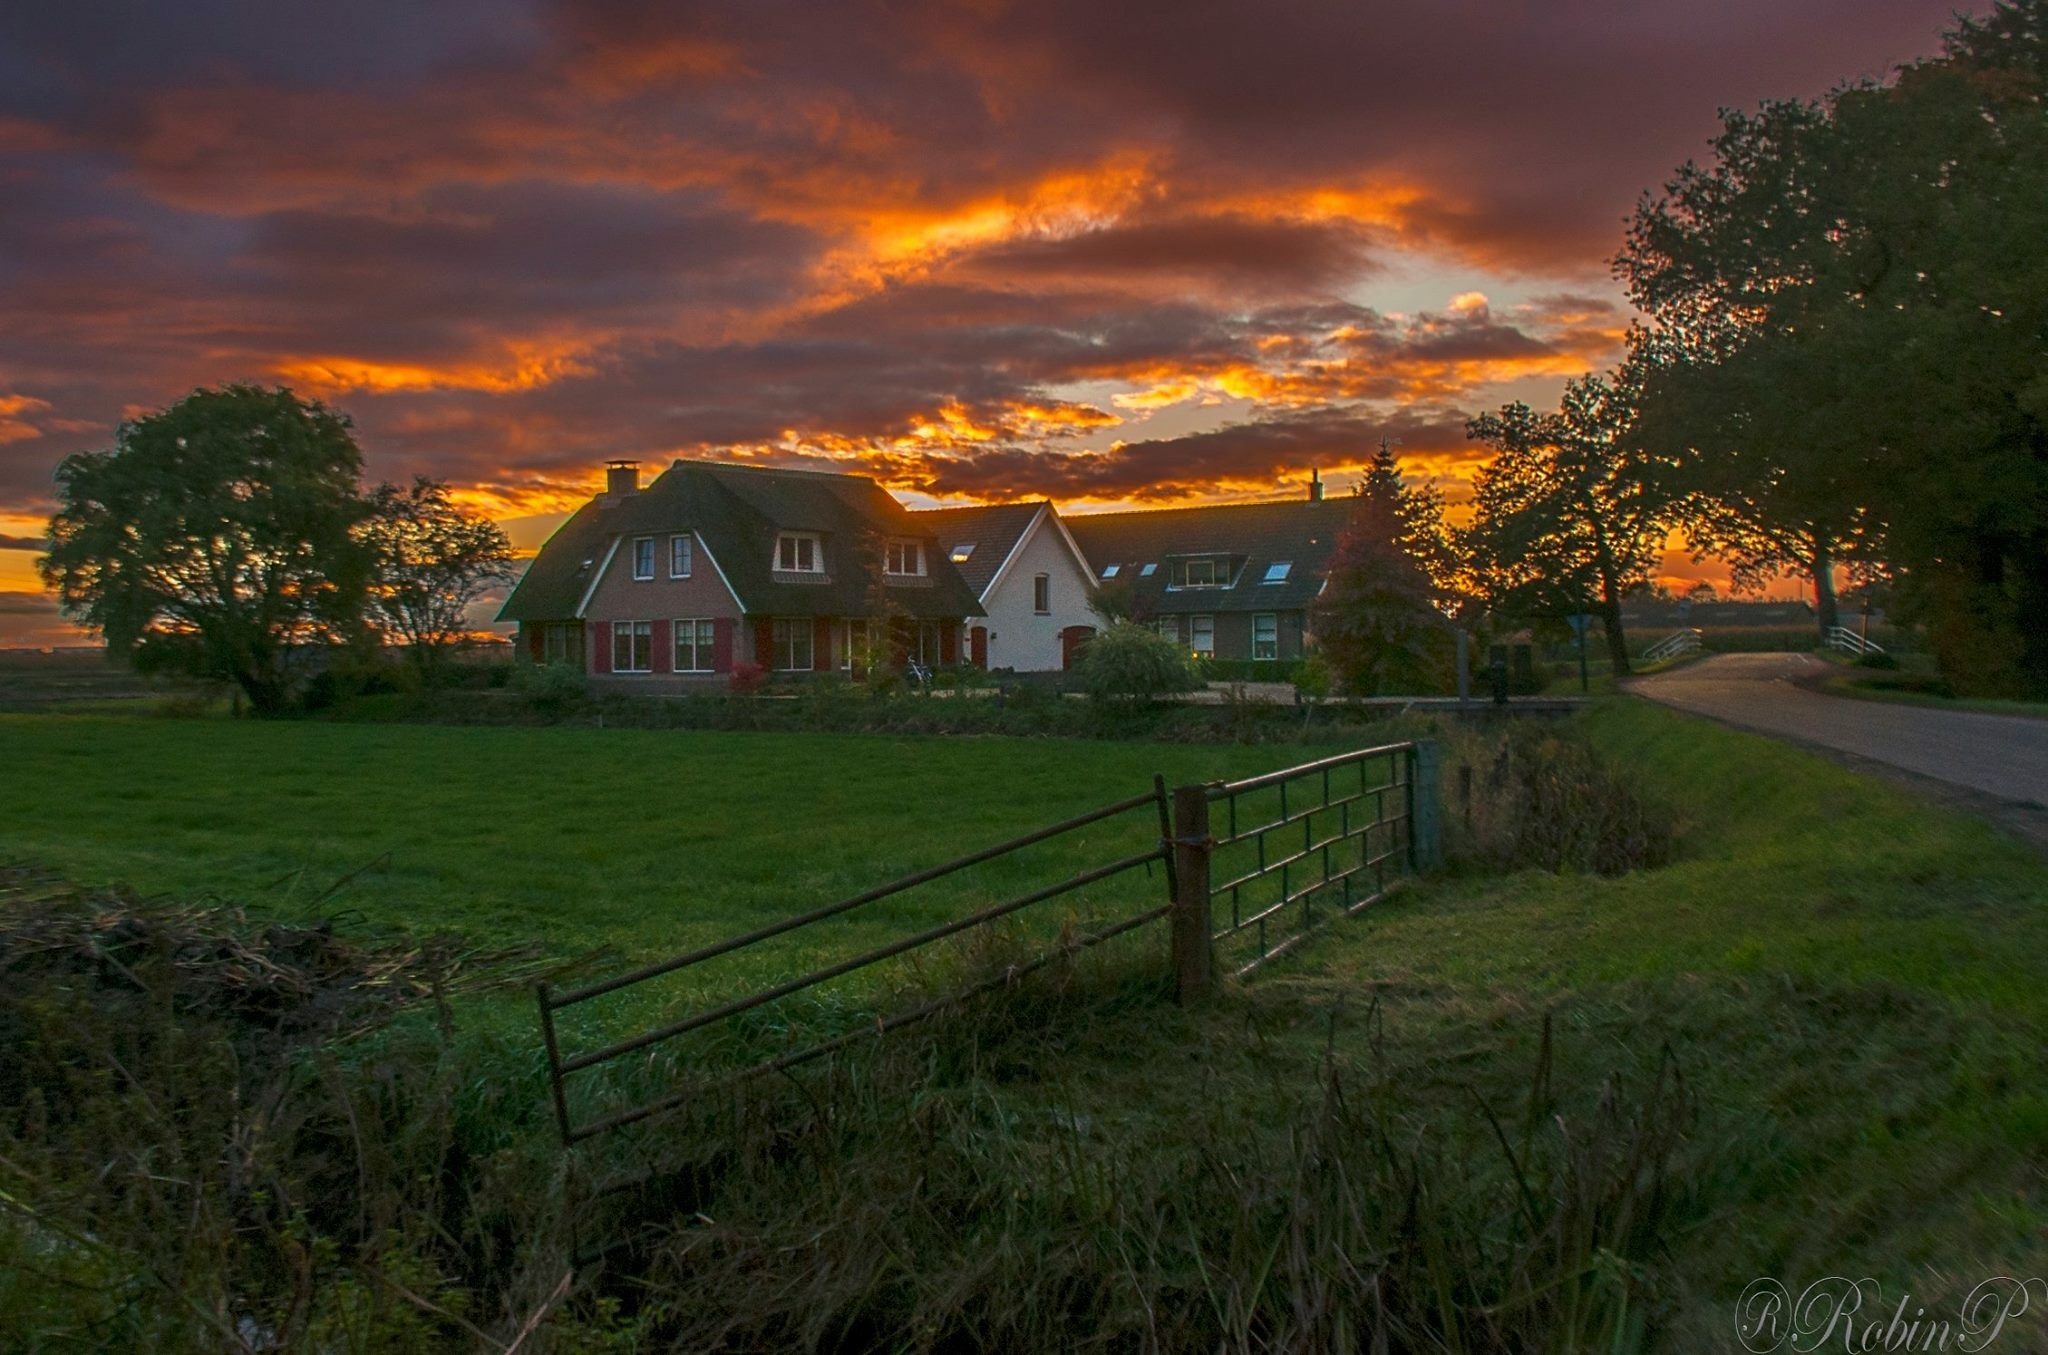 Epic sunset by Robin Pulles